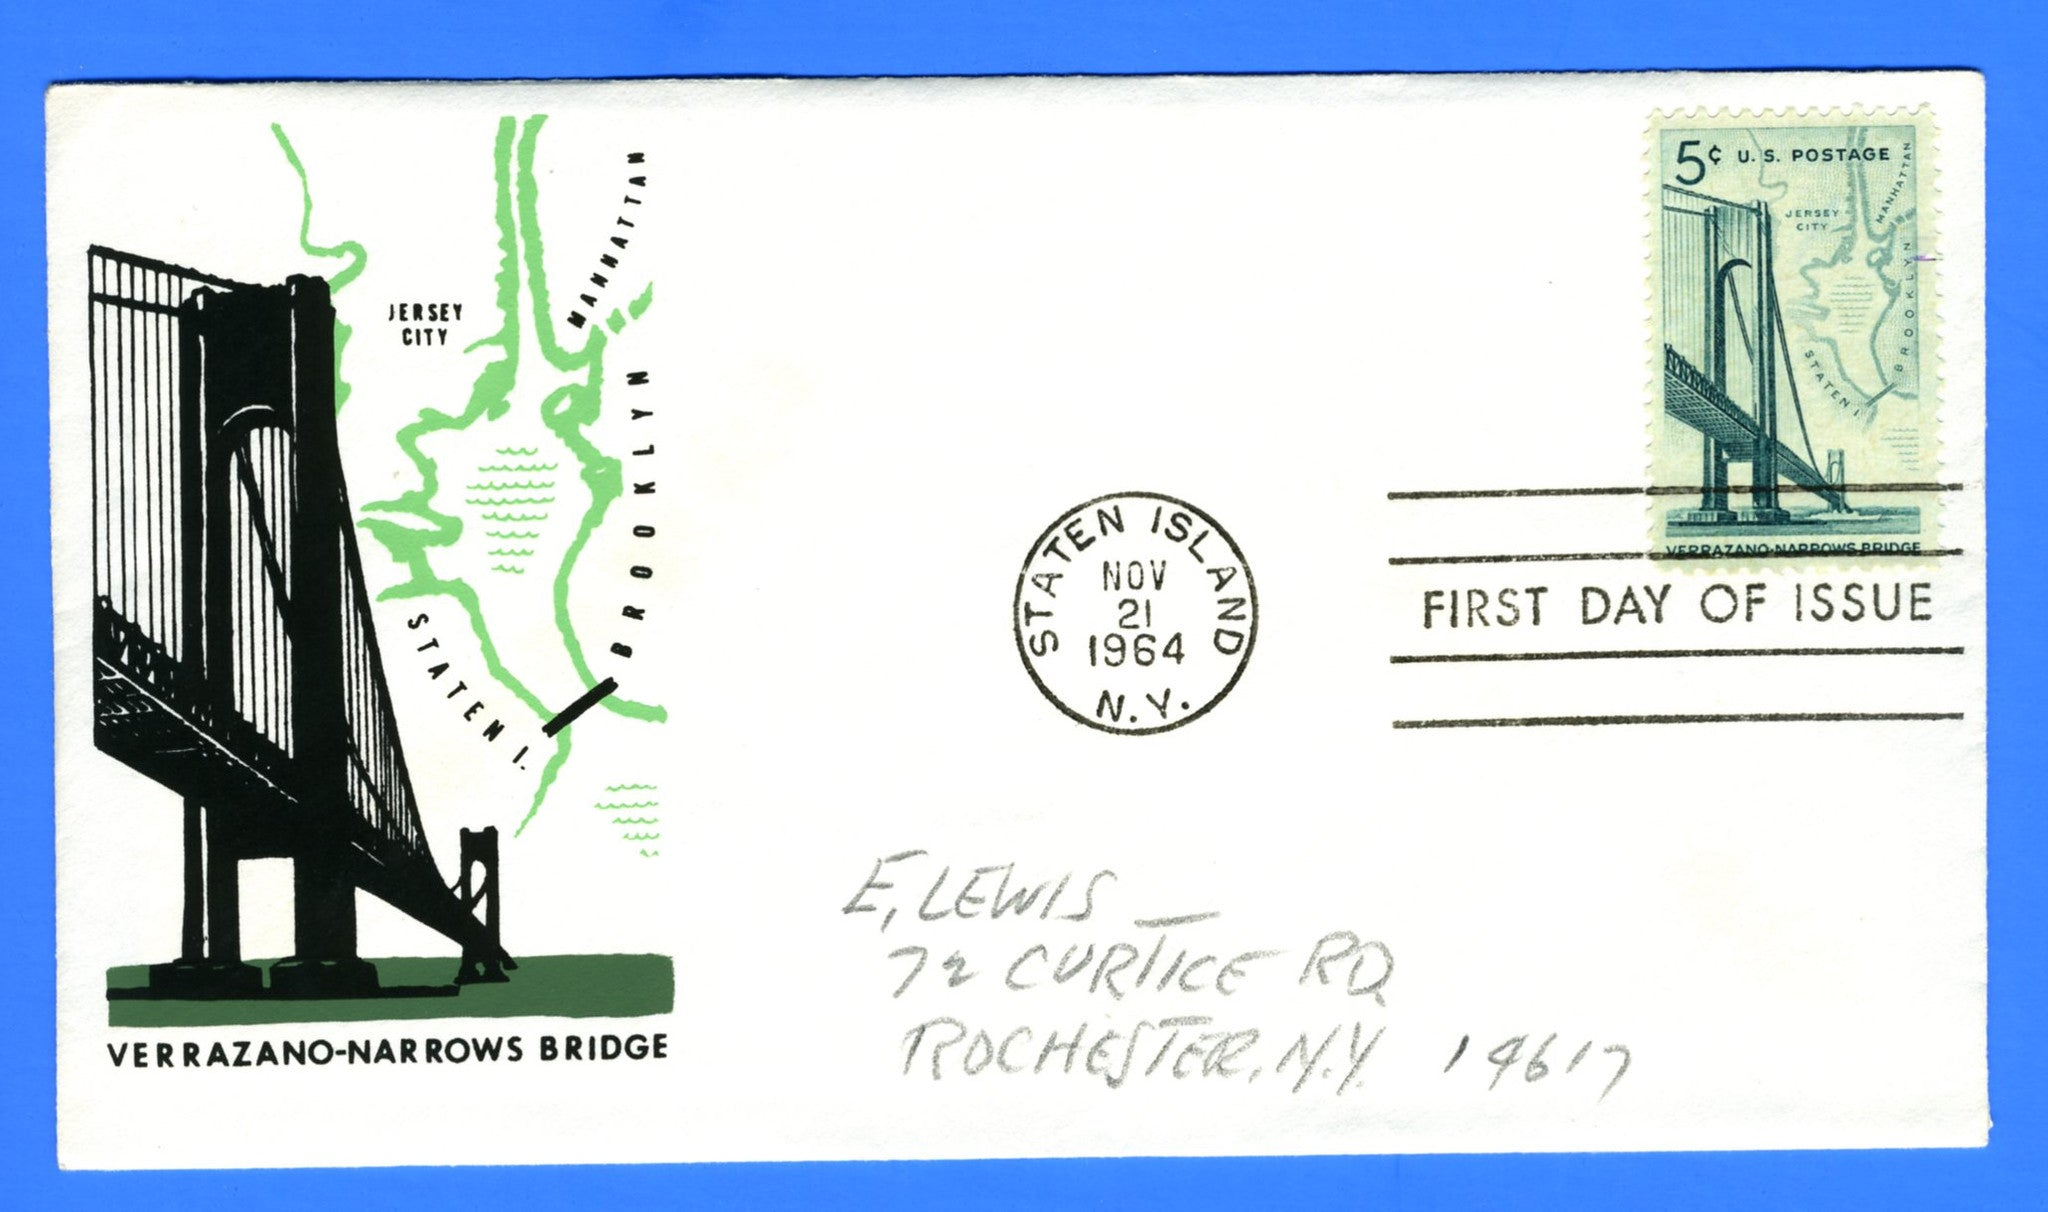 Scott 1258 5c Verrazano Narrows Bridge Silk Screen First Day Cover by Eric Lewis - Rare - Only Twelve Known Copies